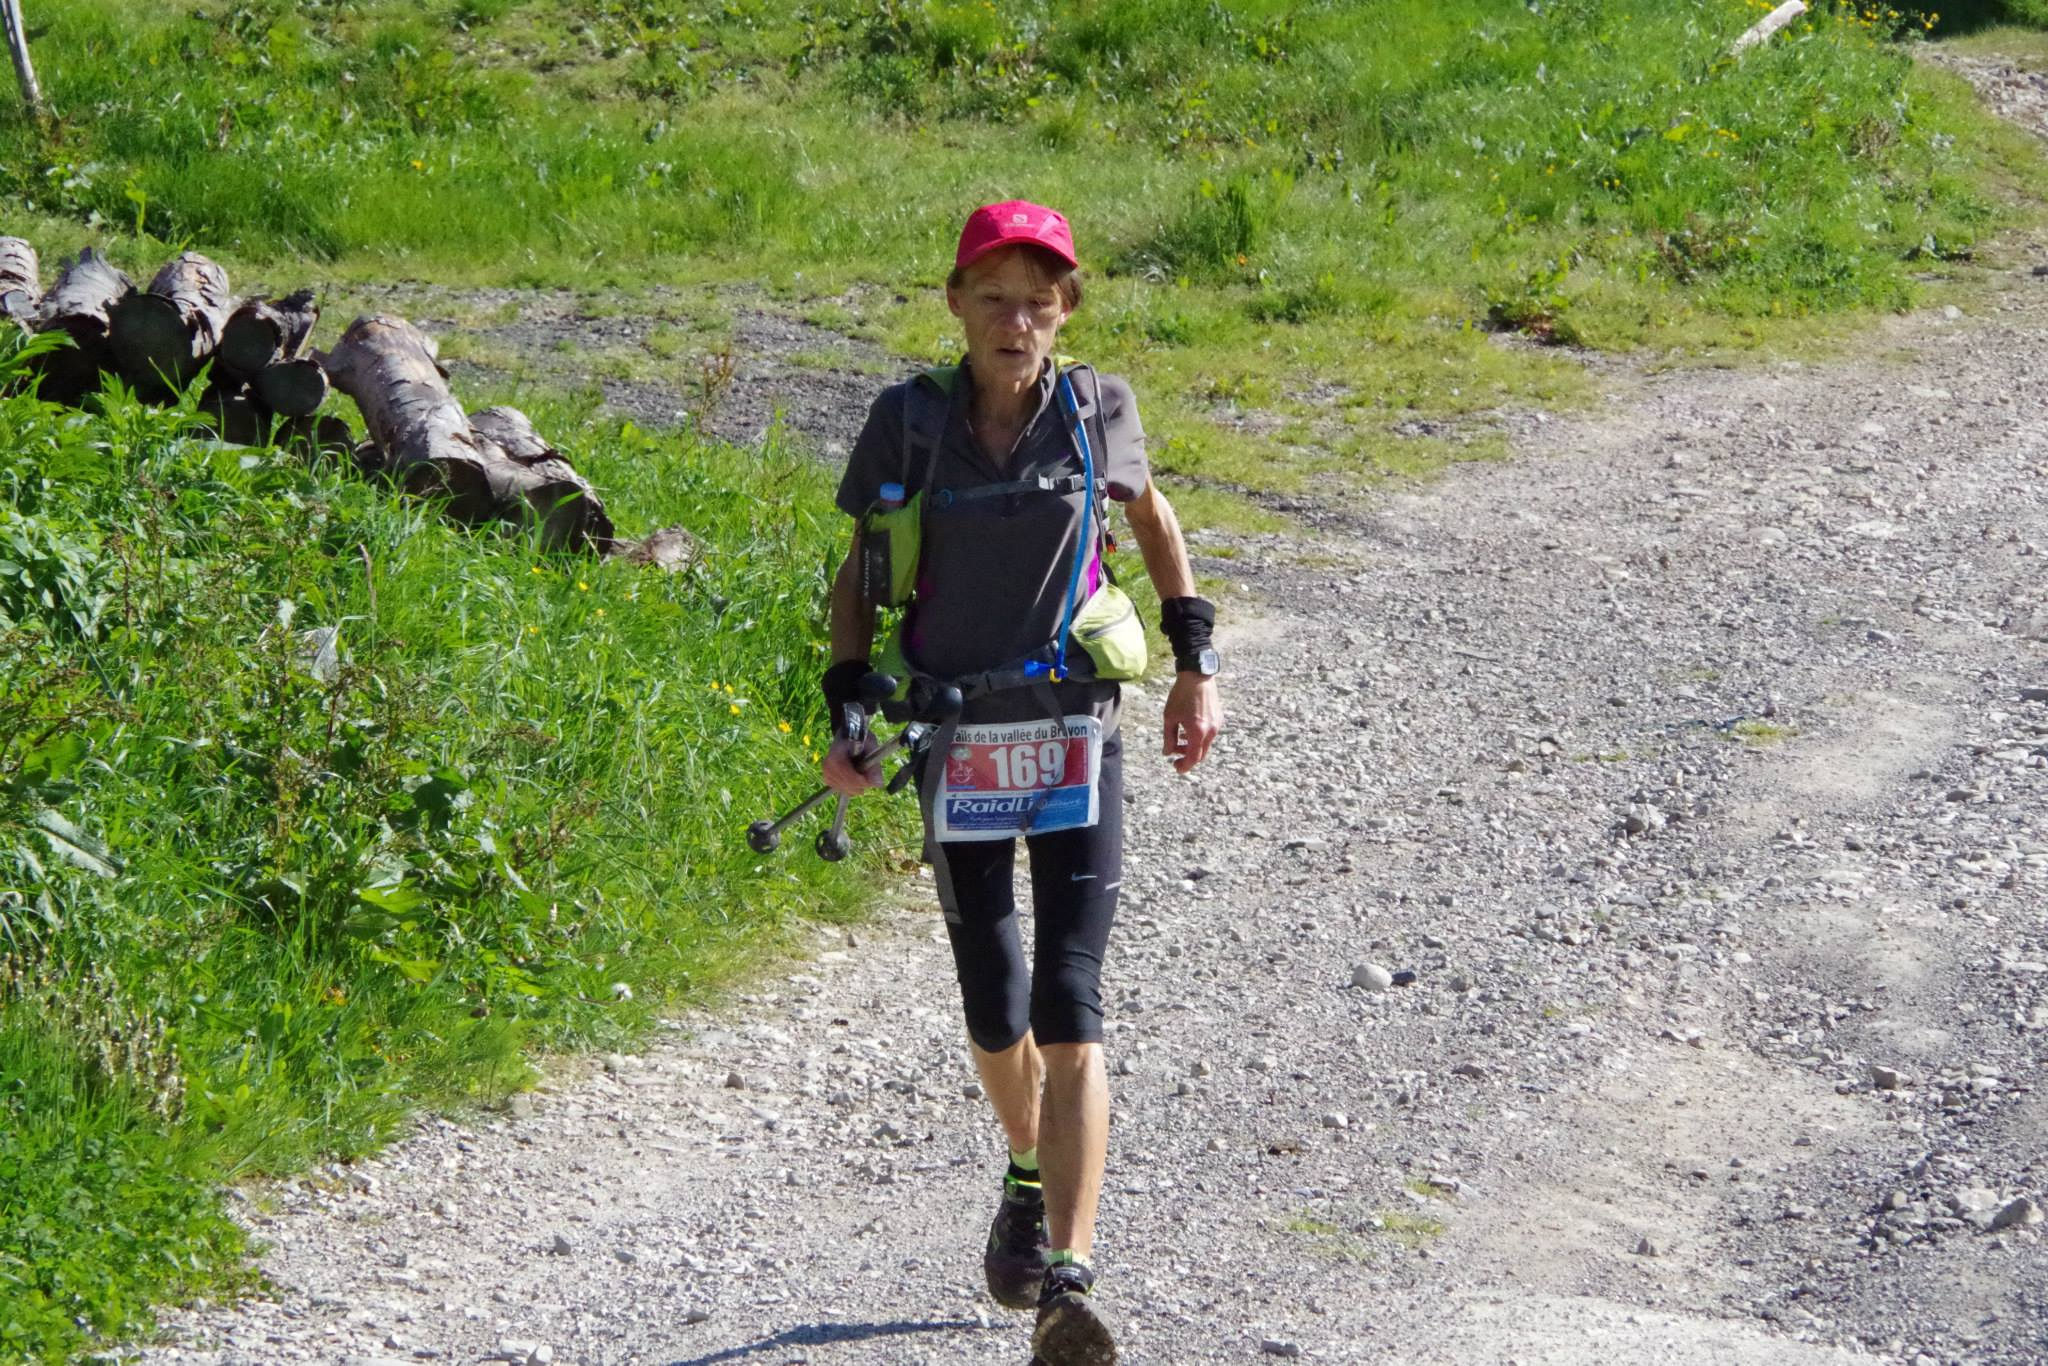 11312780 10153893144697782 7061323759324423091 o - RESULTATS, COMMENTAIRES, PHOTOS ET VIDEO DES TRAILS DE LA VALLEE DU BREVON / 24-05-15